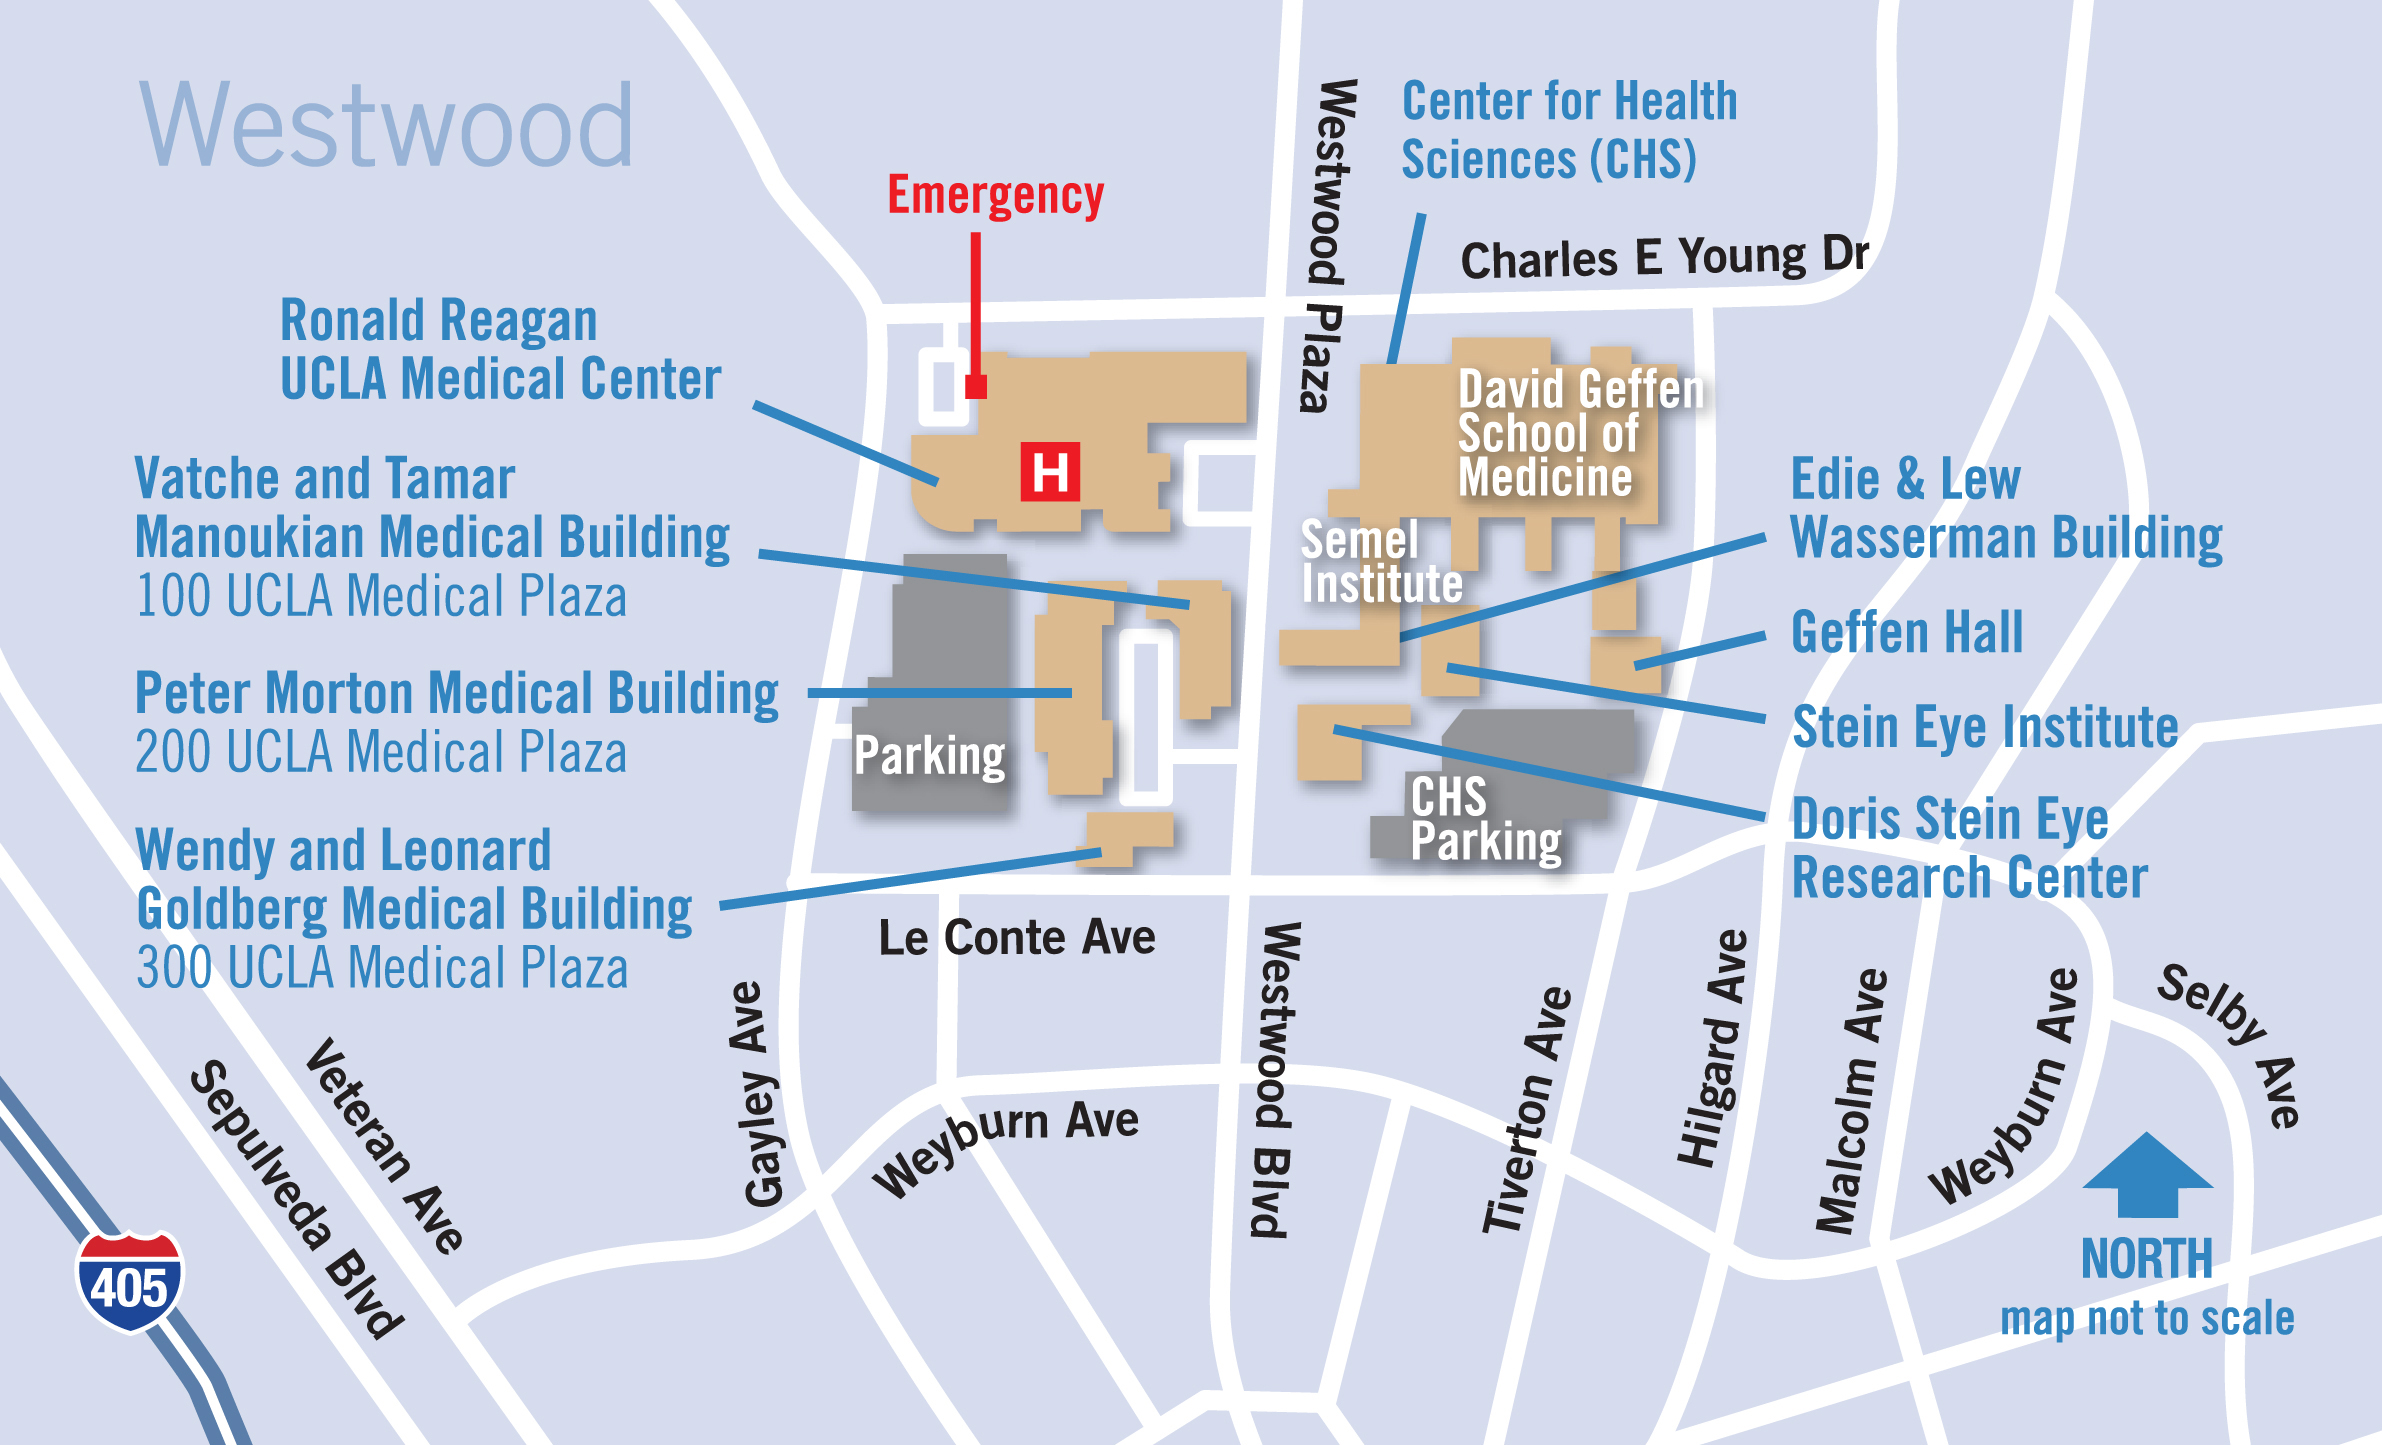 Maps and Directions for Ronald Reagan UCLA Medical Center ... Brentwood East Campus Map on woodbury campus map, south gate campus map, farmington campus map, saint peters campus map, selden campus map, irvine campus map, beaumont campus map, east campus map, madera campus map, garden city campus map, bowie campus map, metropolitan campus map, ashford campus map, delano campus map, morningside campus map, old westbury campus map, newton campus map, kettering campus map, homestead campus map, jamestown campus map,